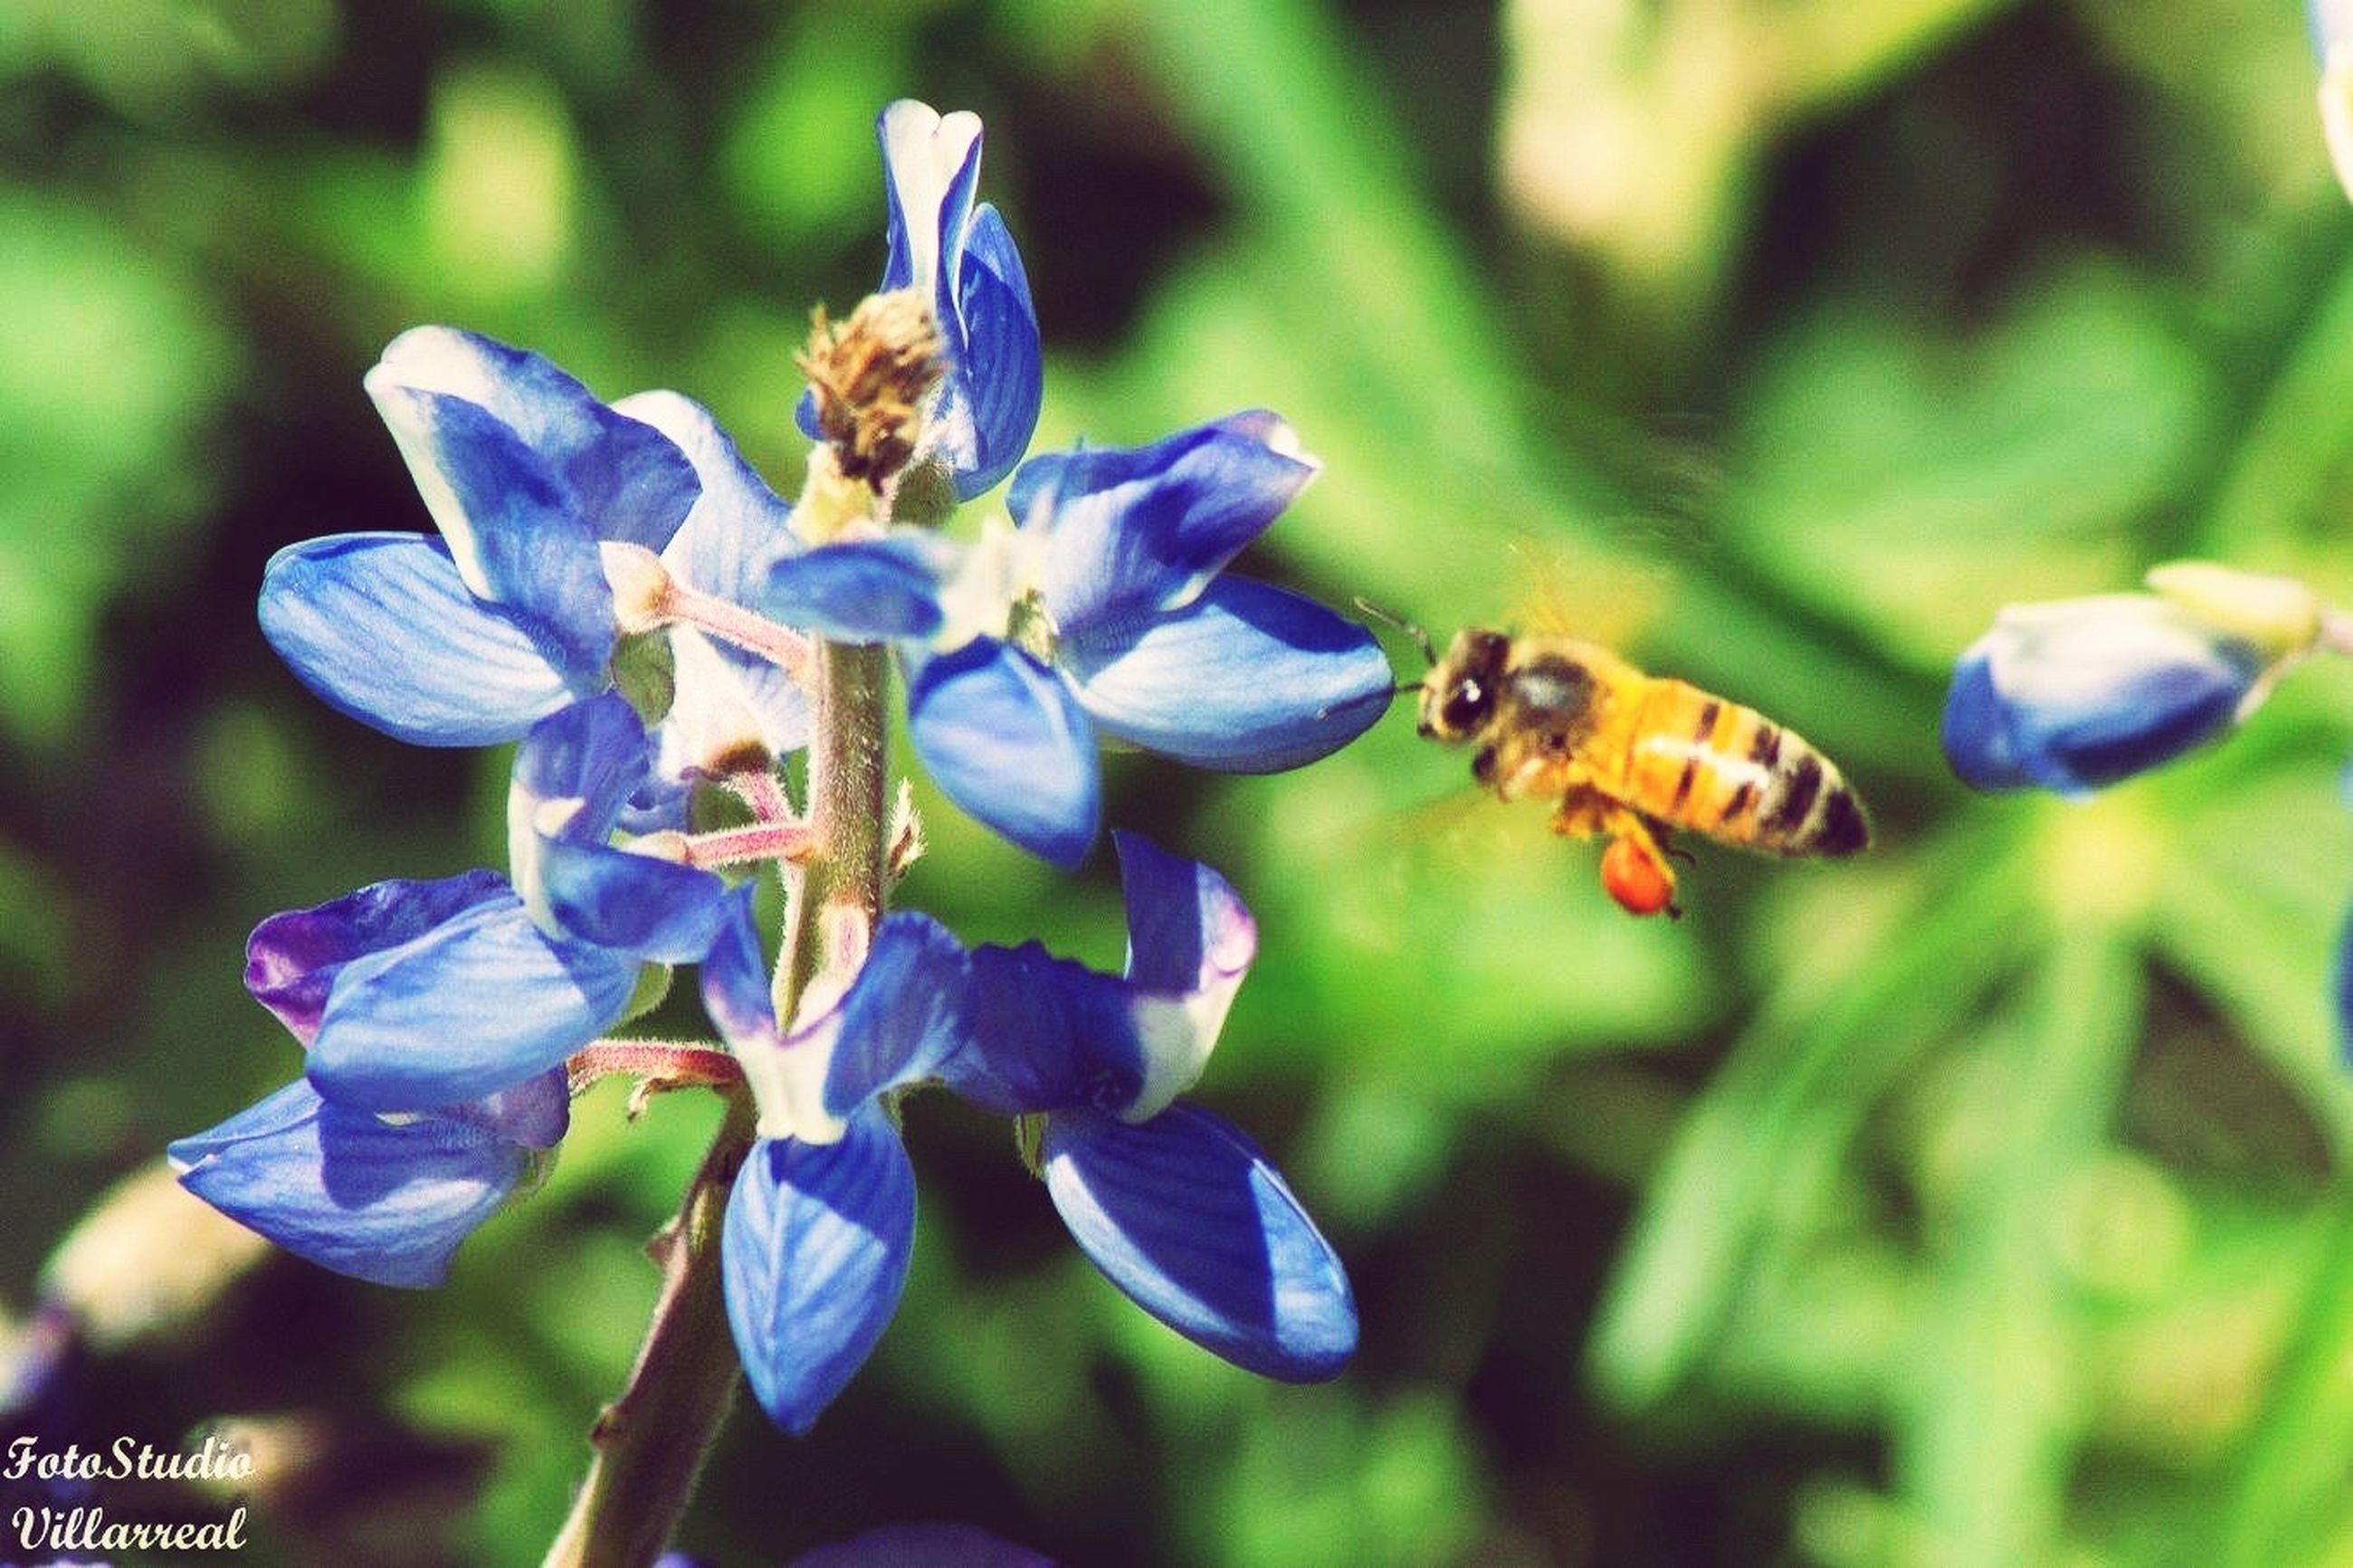 flower, fragility, freshness, close-up, growth, petal, beauty in nature, flower head, focus on foreground, blue, plant, nature, springtime, purple, insect, selective focus, in bloom, flying, day, pollination, blossom, blooming, botany, formal garden, honey bee, symbiotic relationship, buzzing